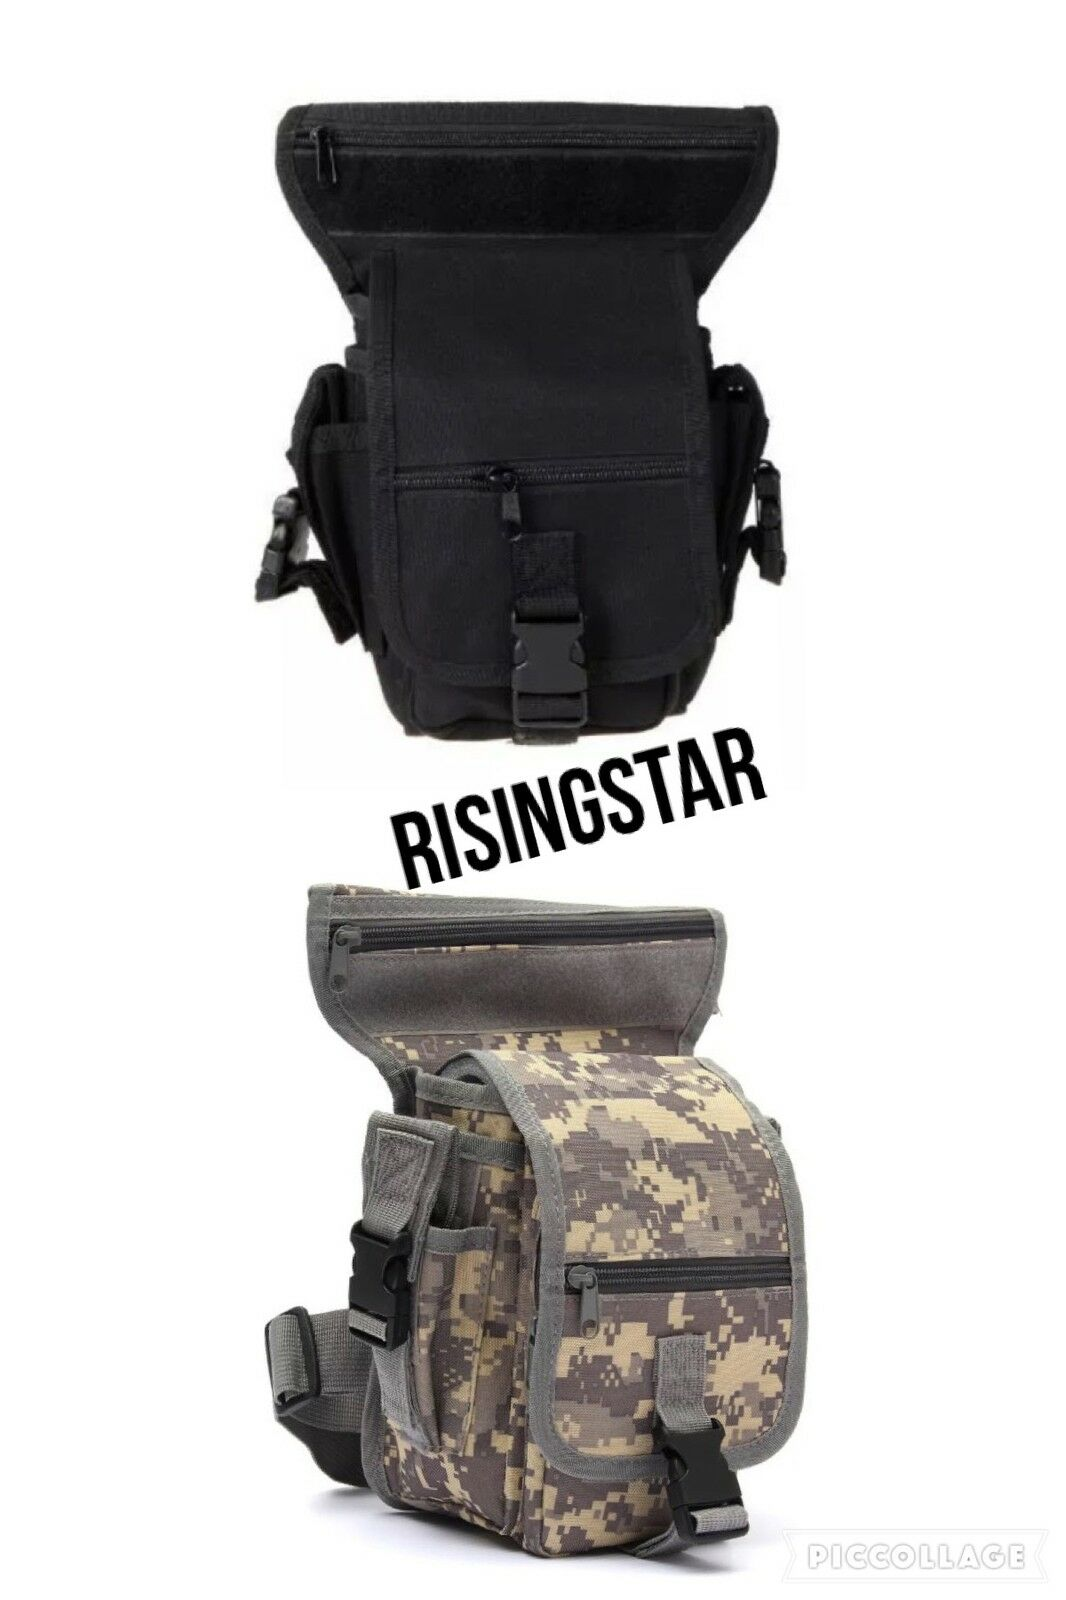 SWAT MULTI-PURPOSE OUTDOOR LEG DROP UTILITY BAG THIGH PACK FANNY PACK Travel NEW